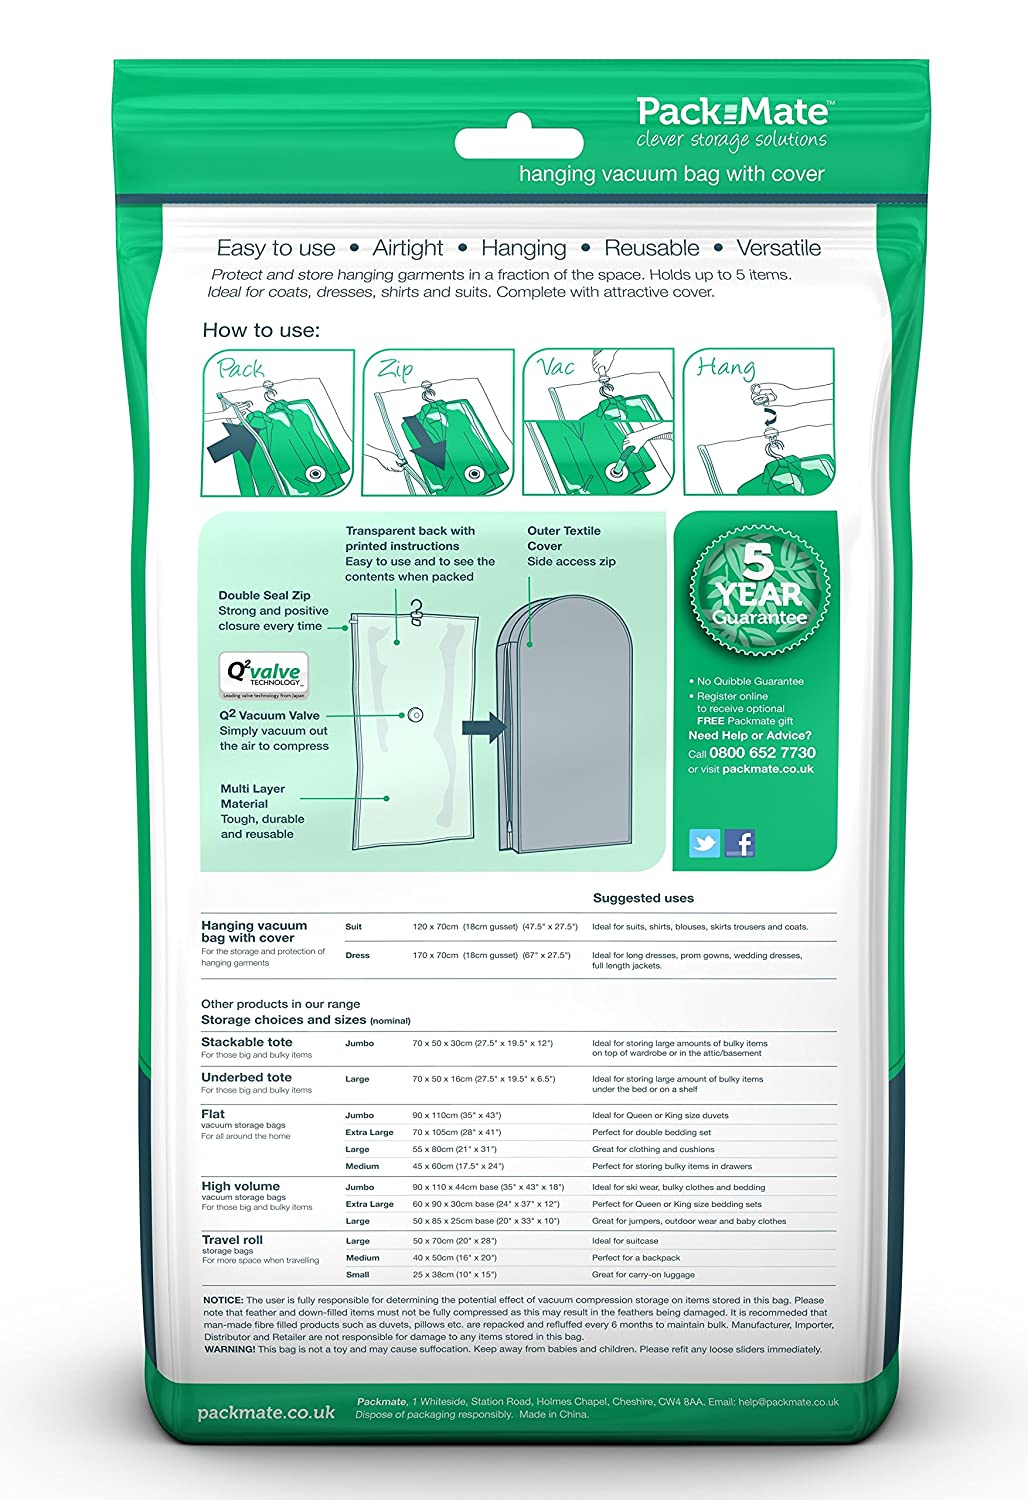 Dresses T Shirts /& More Coats Jackets Packmate /® Hanging Vacuum Storage Bags A Huge Space Saver Suitable For Suits